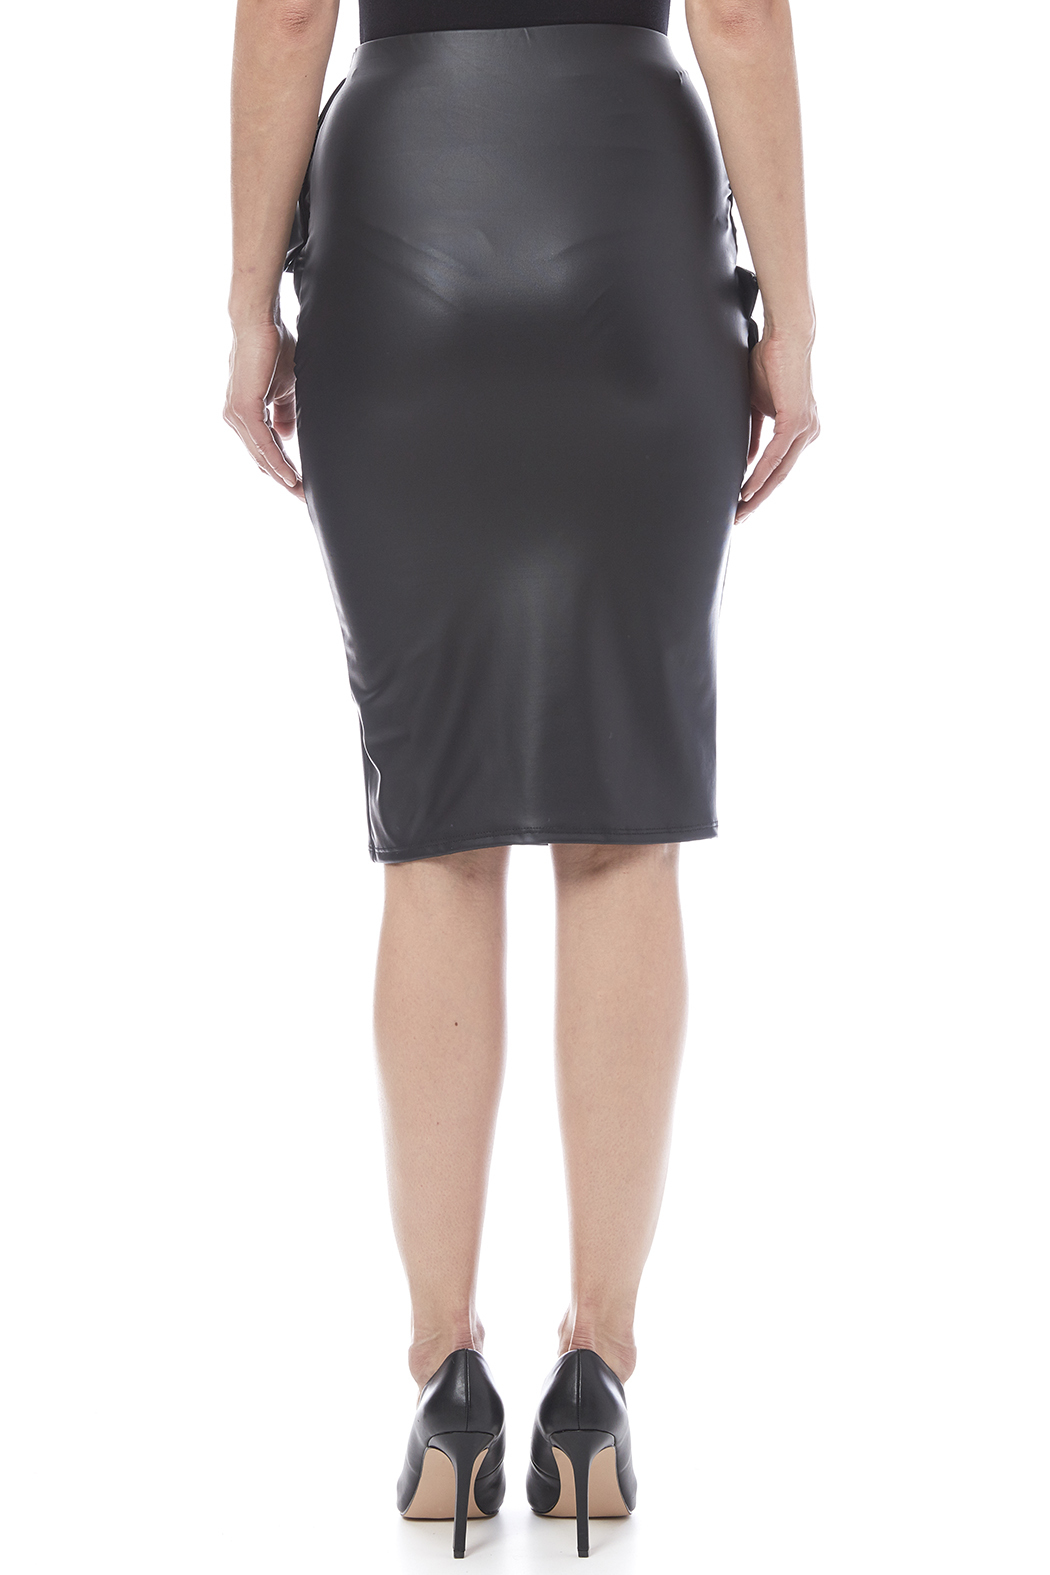 Auditions Faux Leather Pencil Skirt - Back Cropped Image